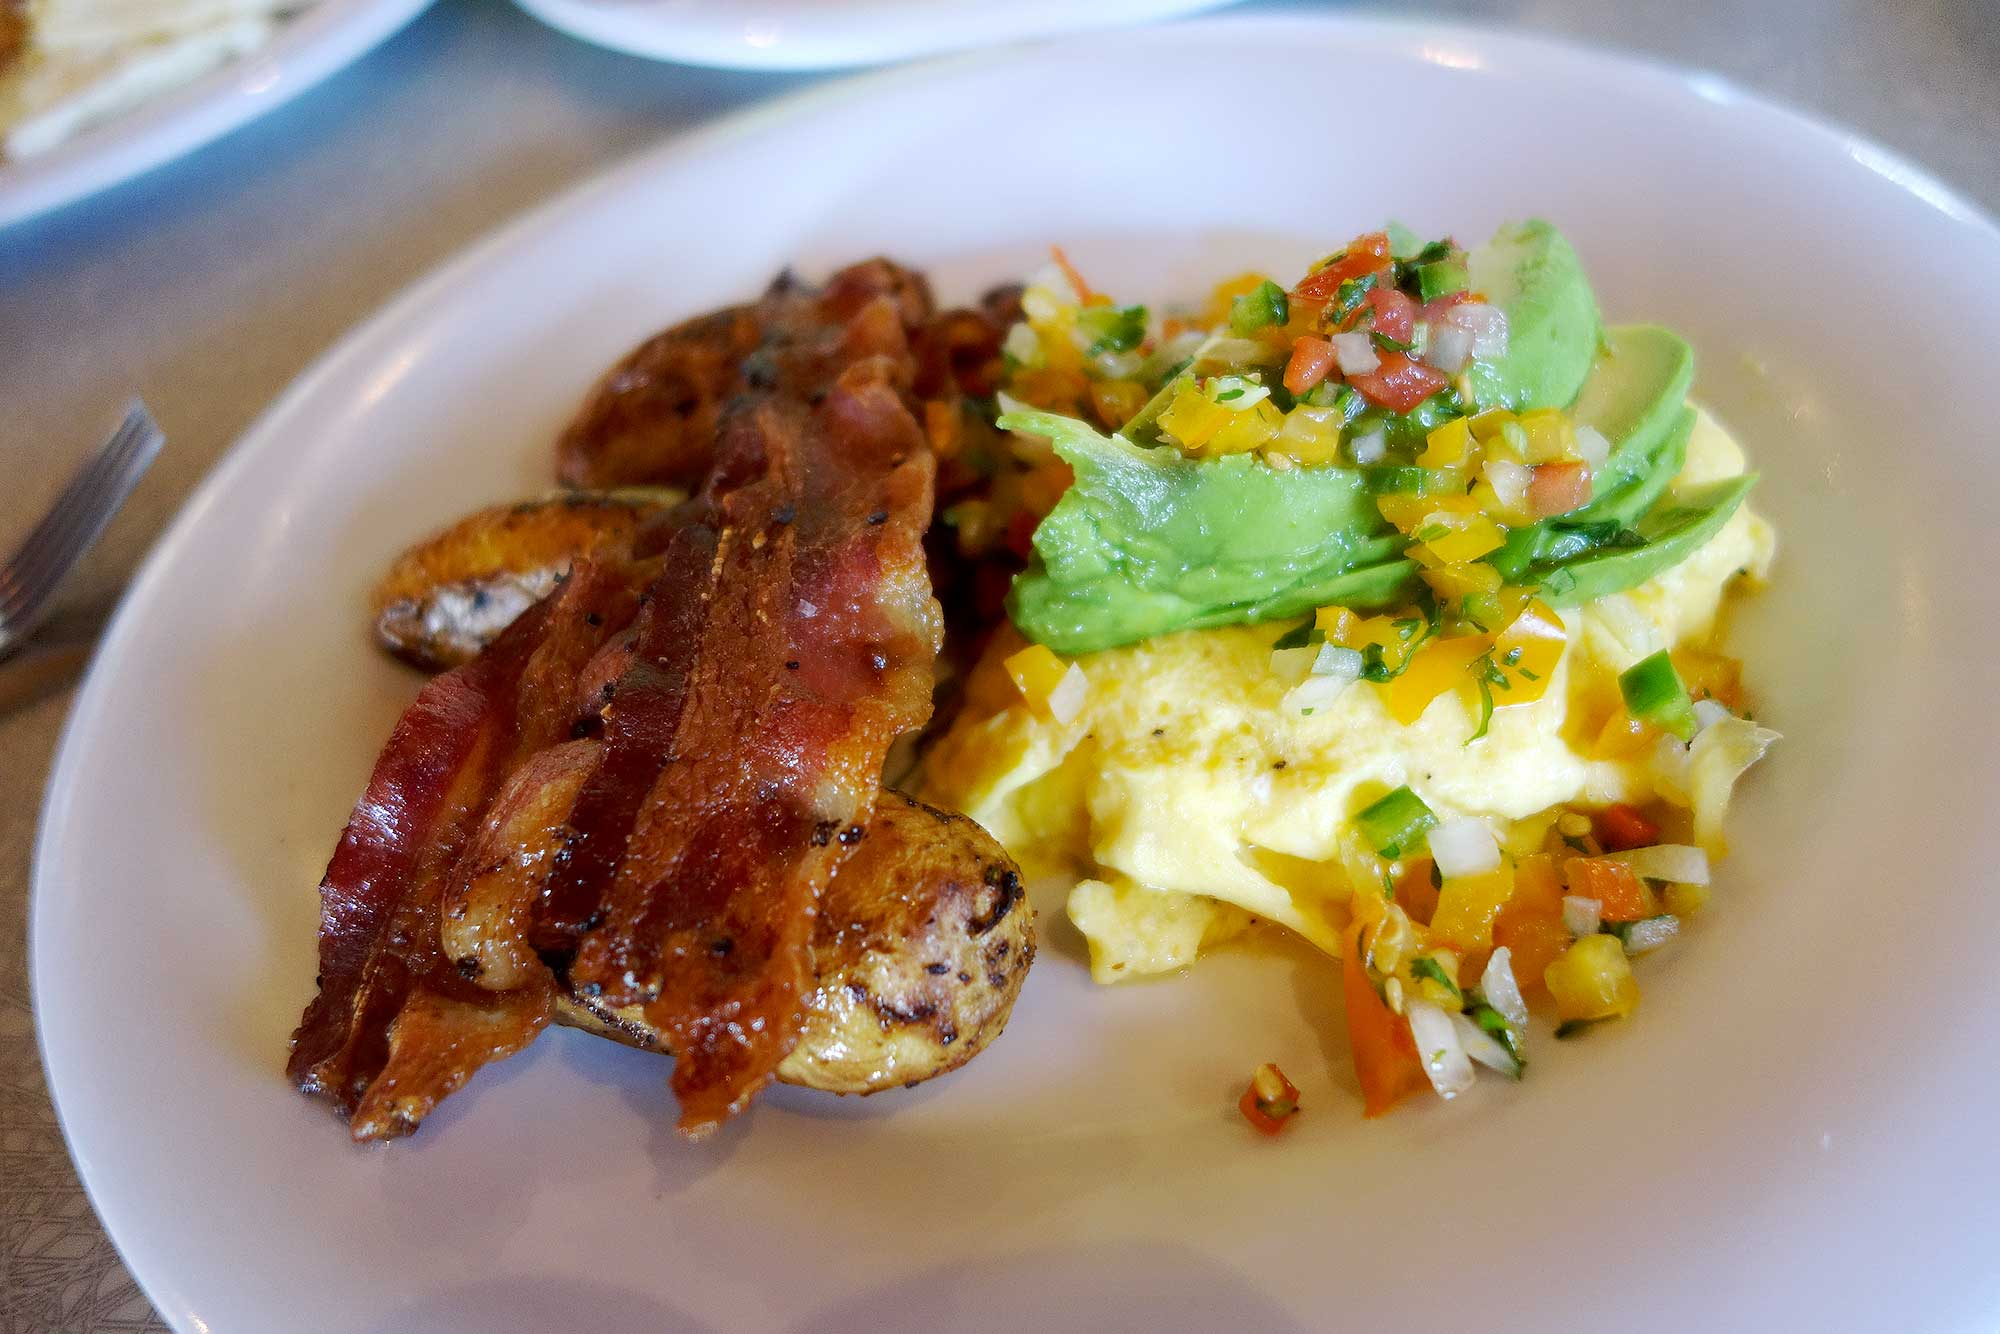 http://www azcentral com/picture-gallery/entertainment/dining